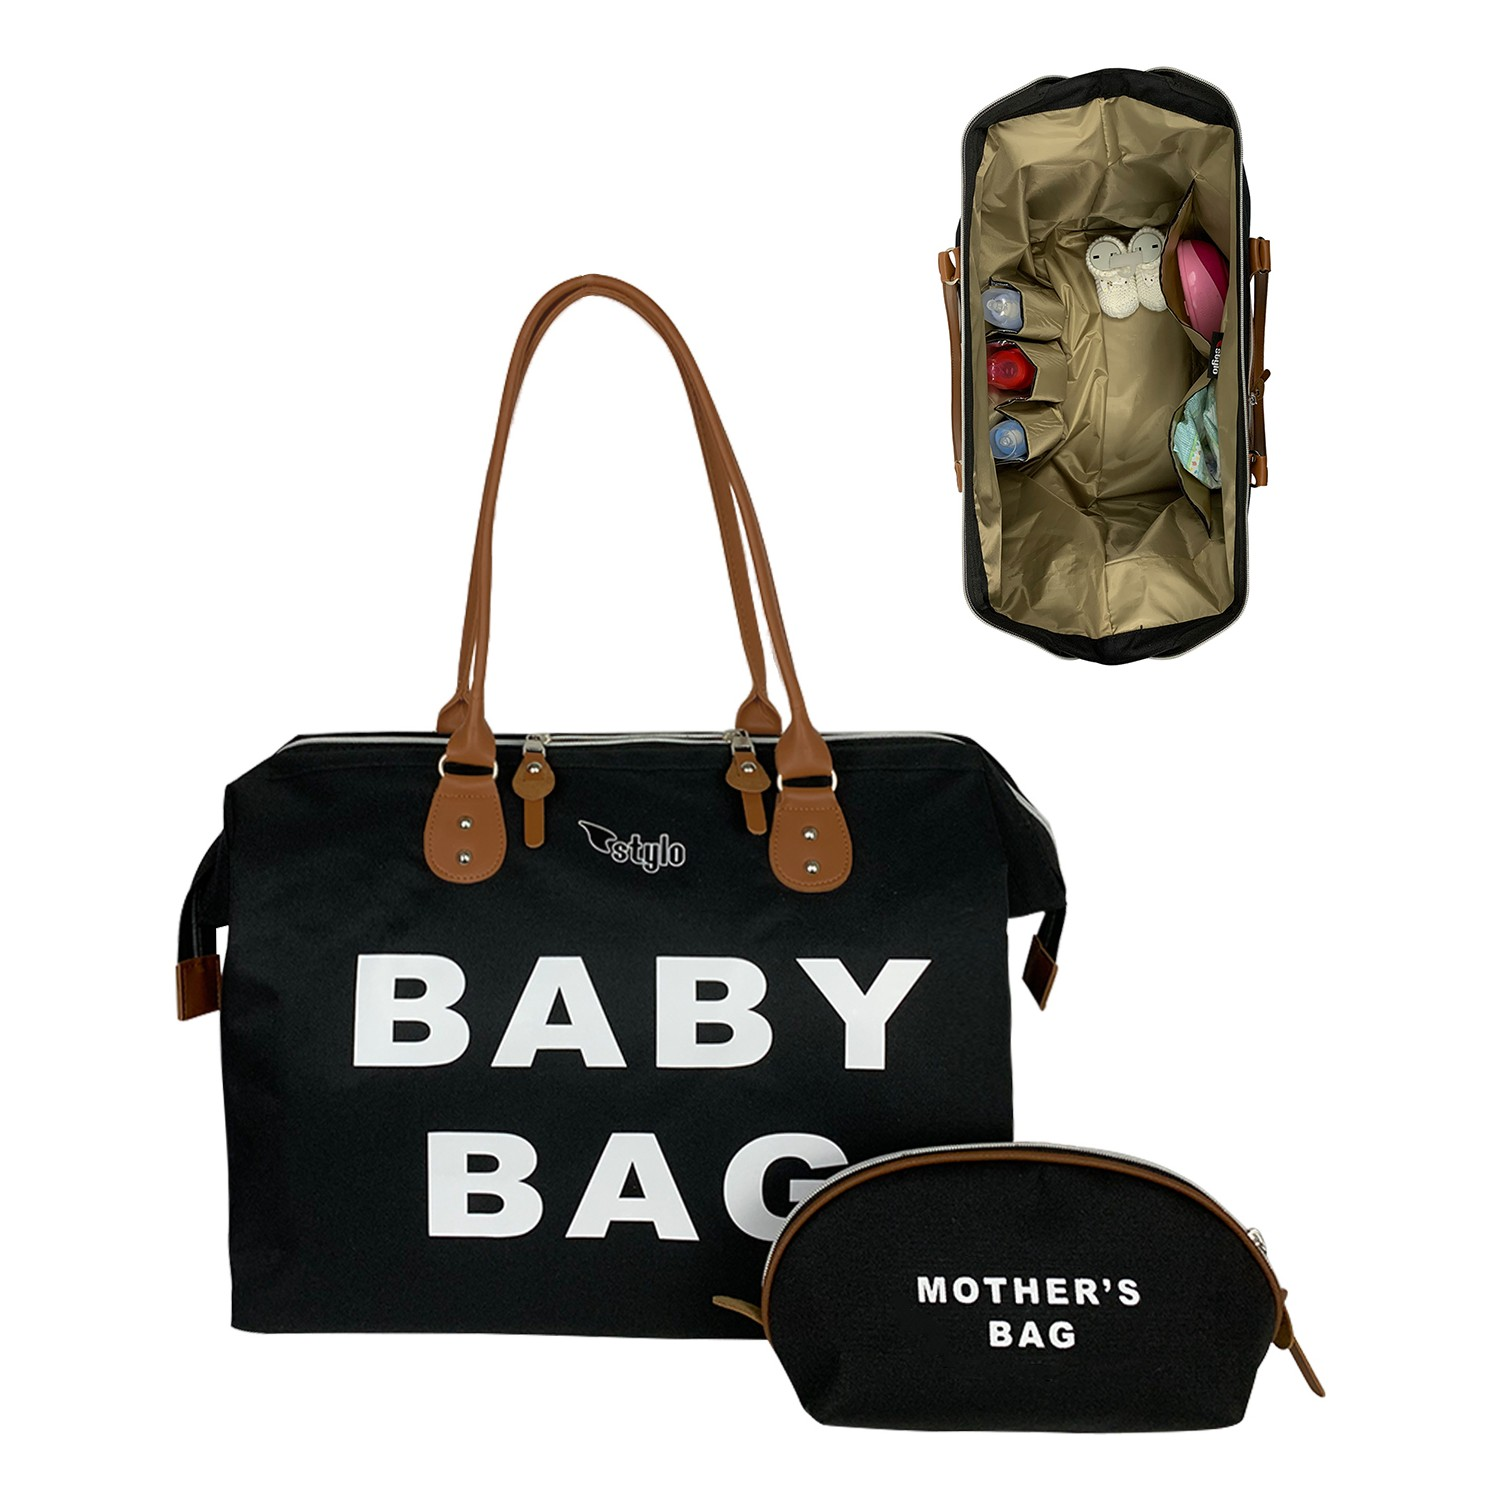 2021 Baby Tote Bag Set For Mothers 2 PCs Nappy Maternity Diaper Mommy Bag Storage Organizer Changing Carriage Babycare Backpack